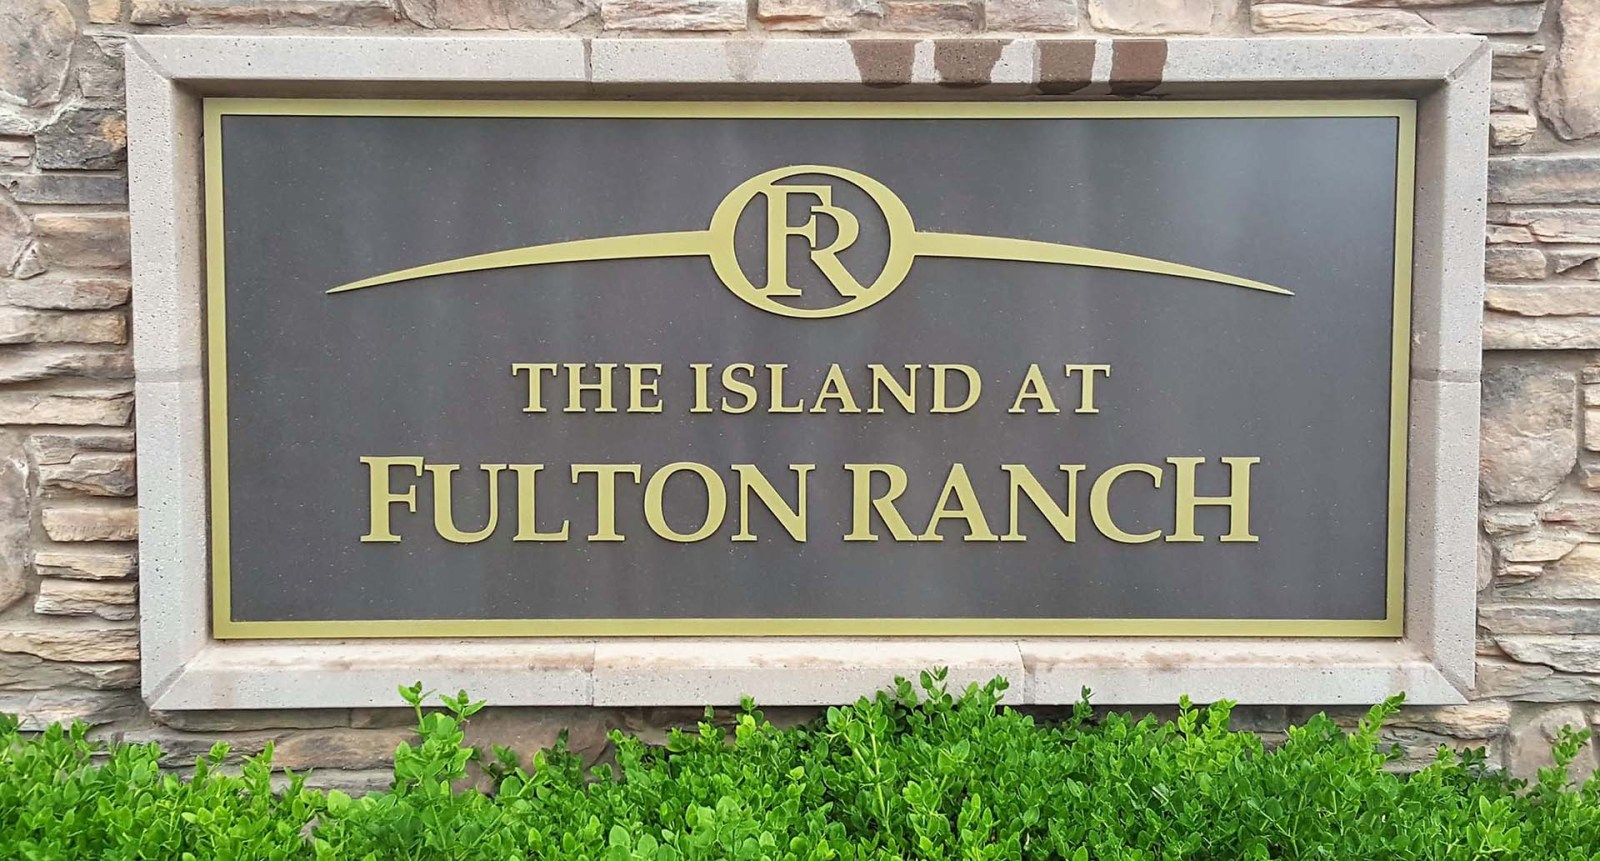 The Island at Fulton Ranch